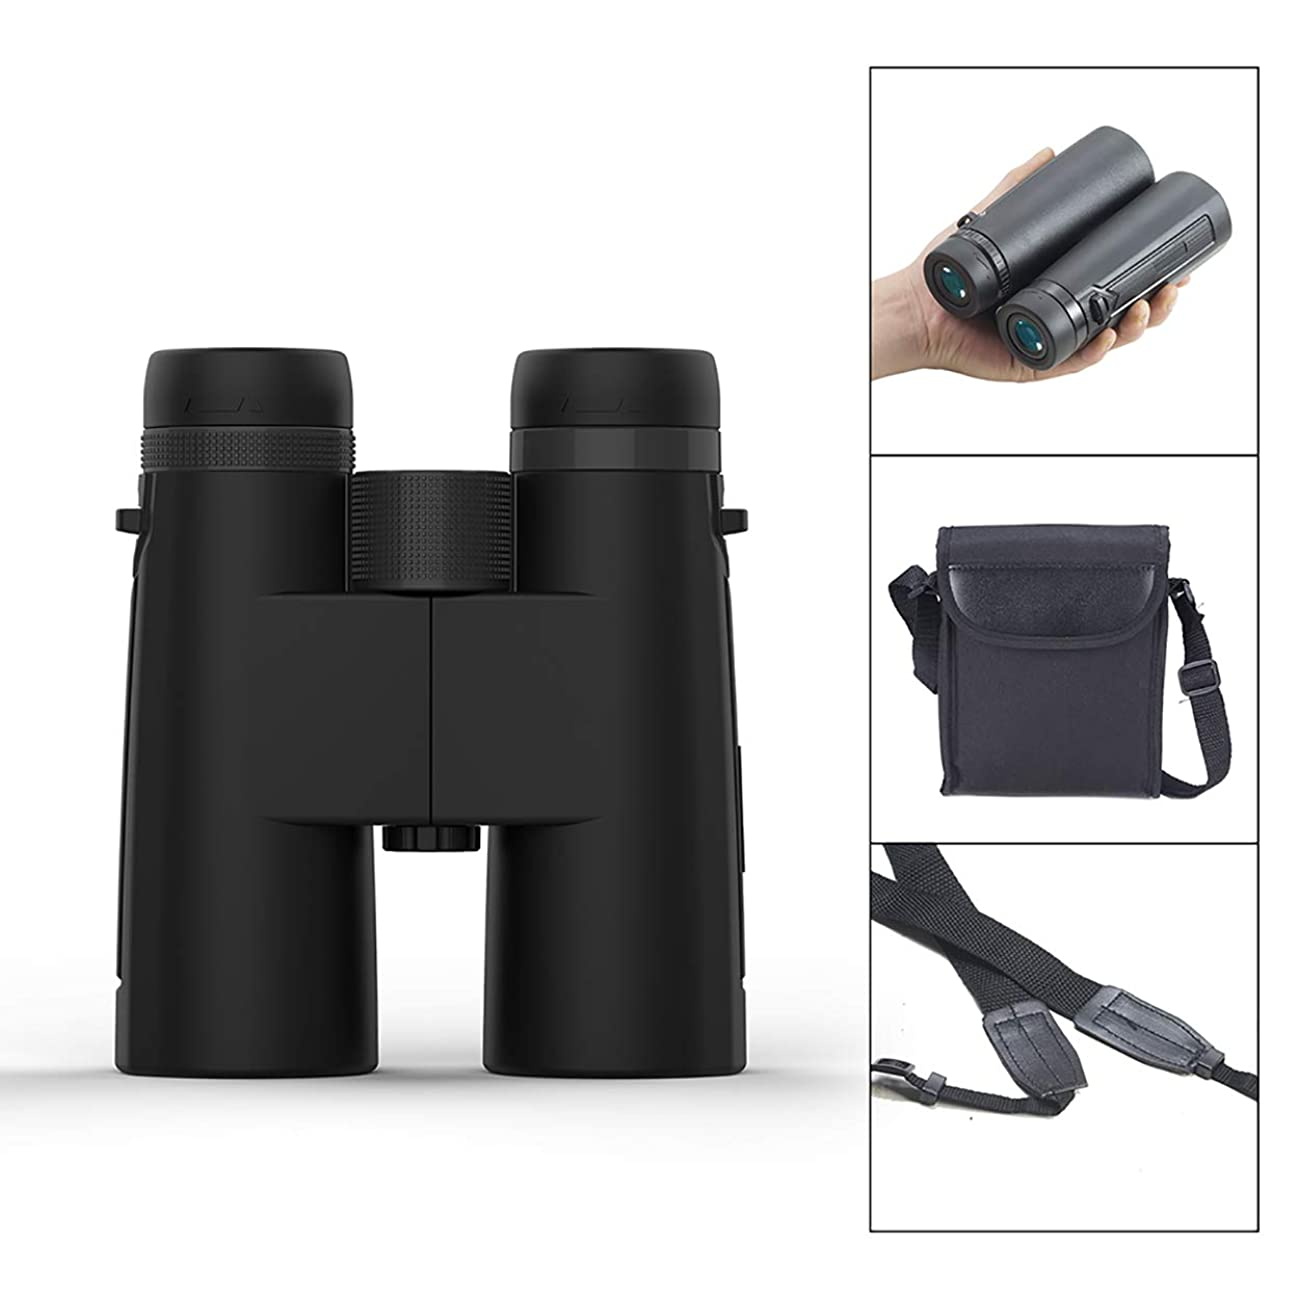 HD Binoculars for Adults, Hima 12x42 Compact Lightweight Professional Prism Binoculars for Adults Bird Watching Hunting Travel Theater and Concerts Binoculars Waterproof with Night Vision High Power